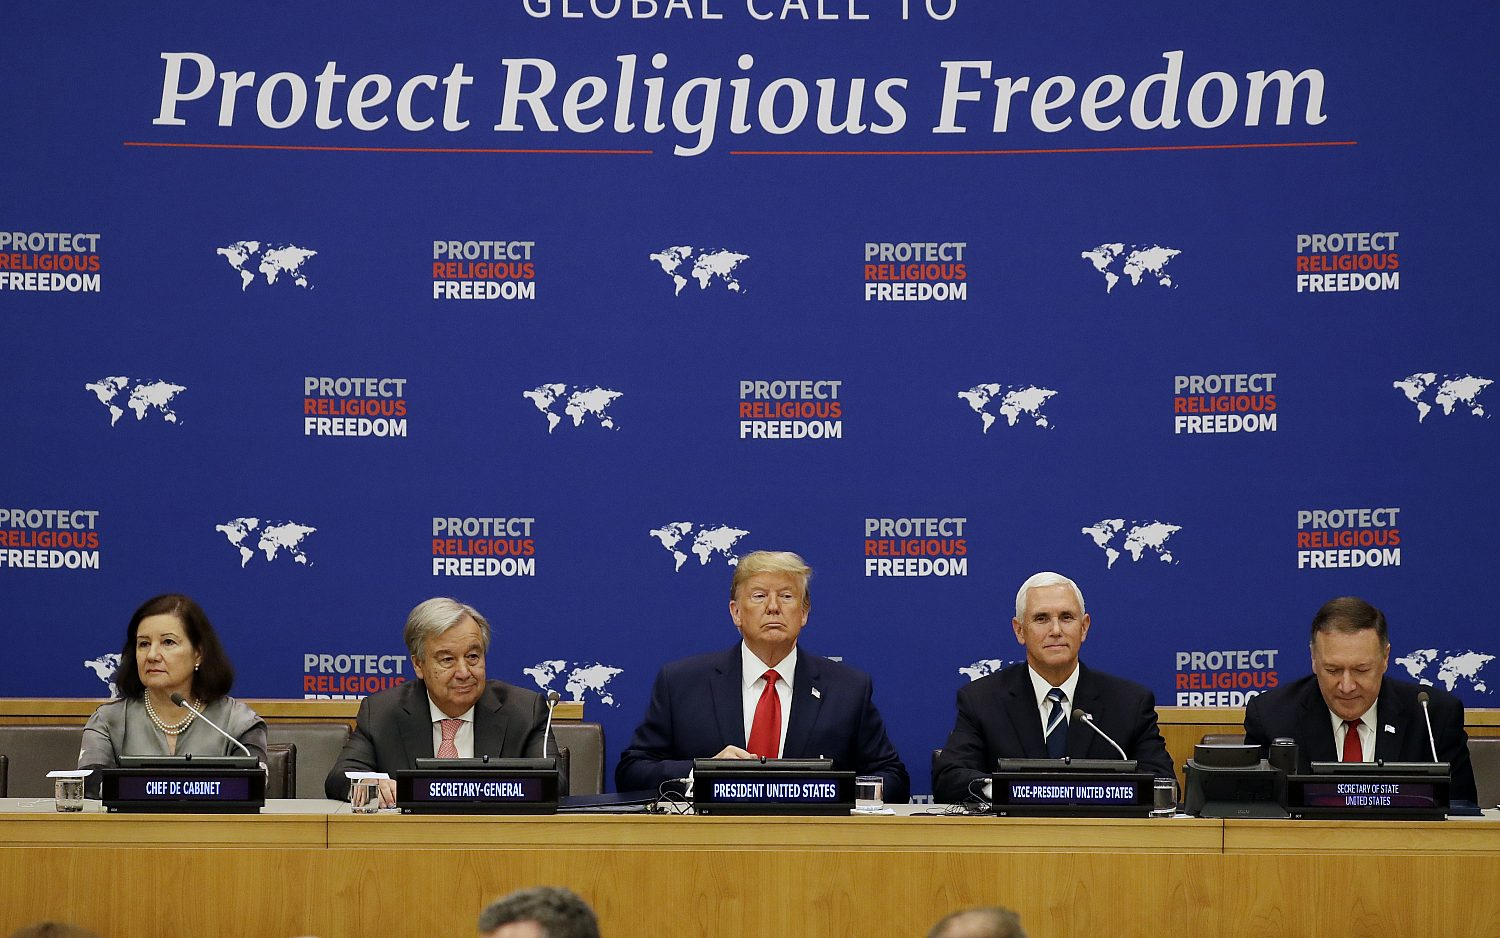 Trump tackles religious persecution